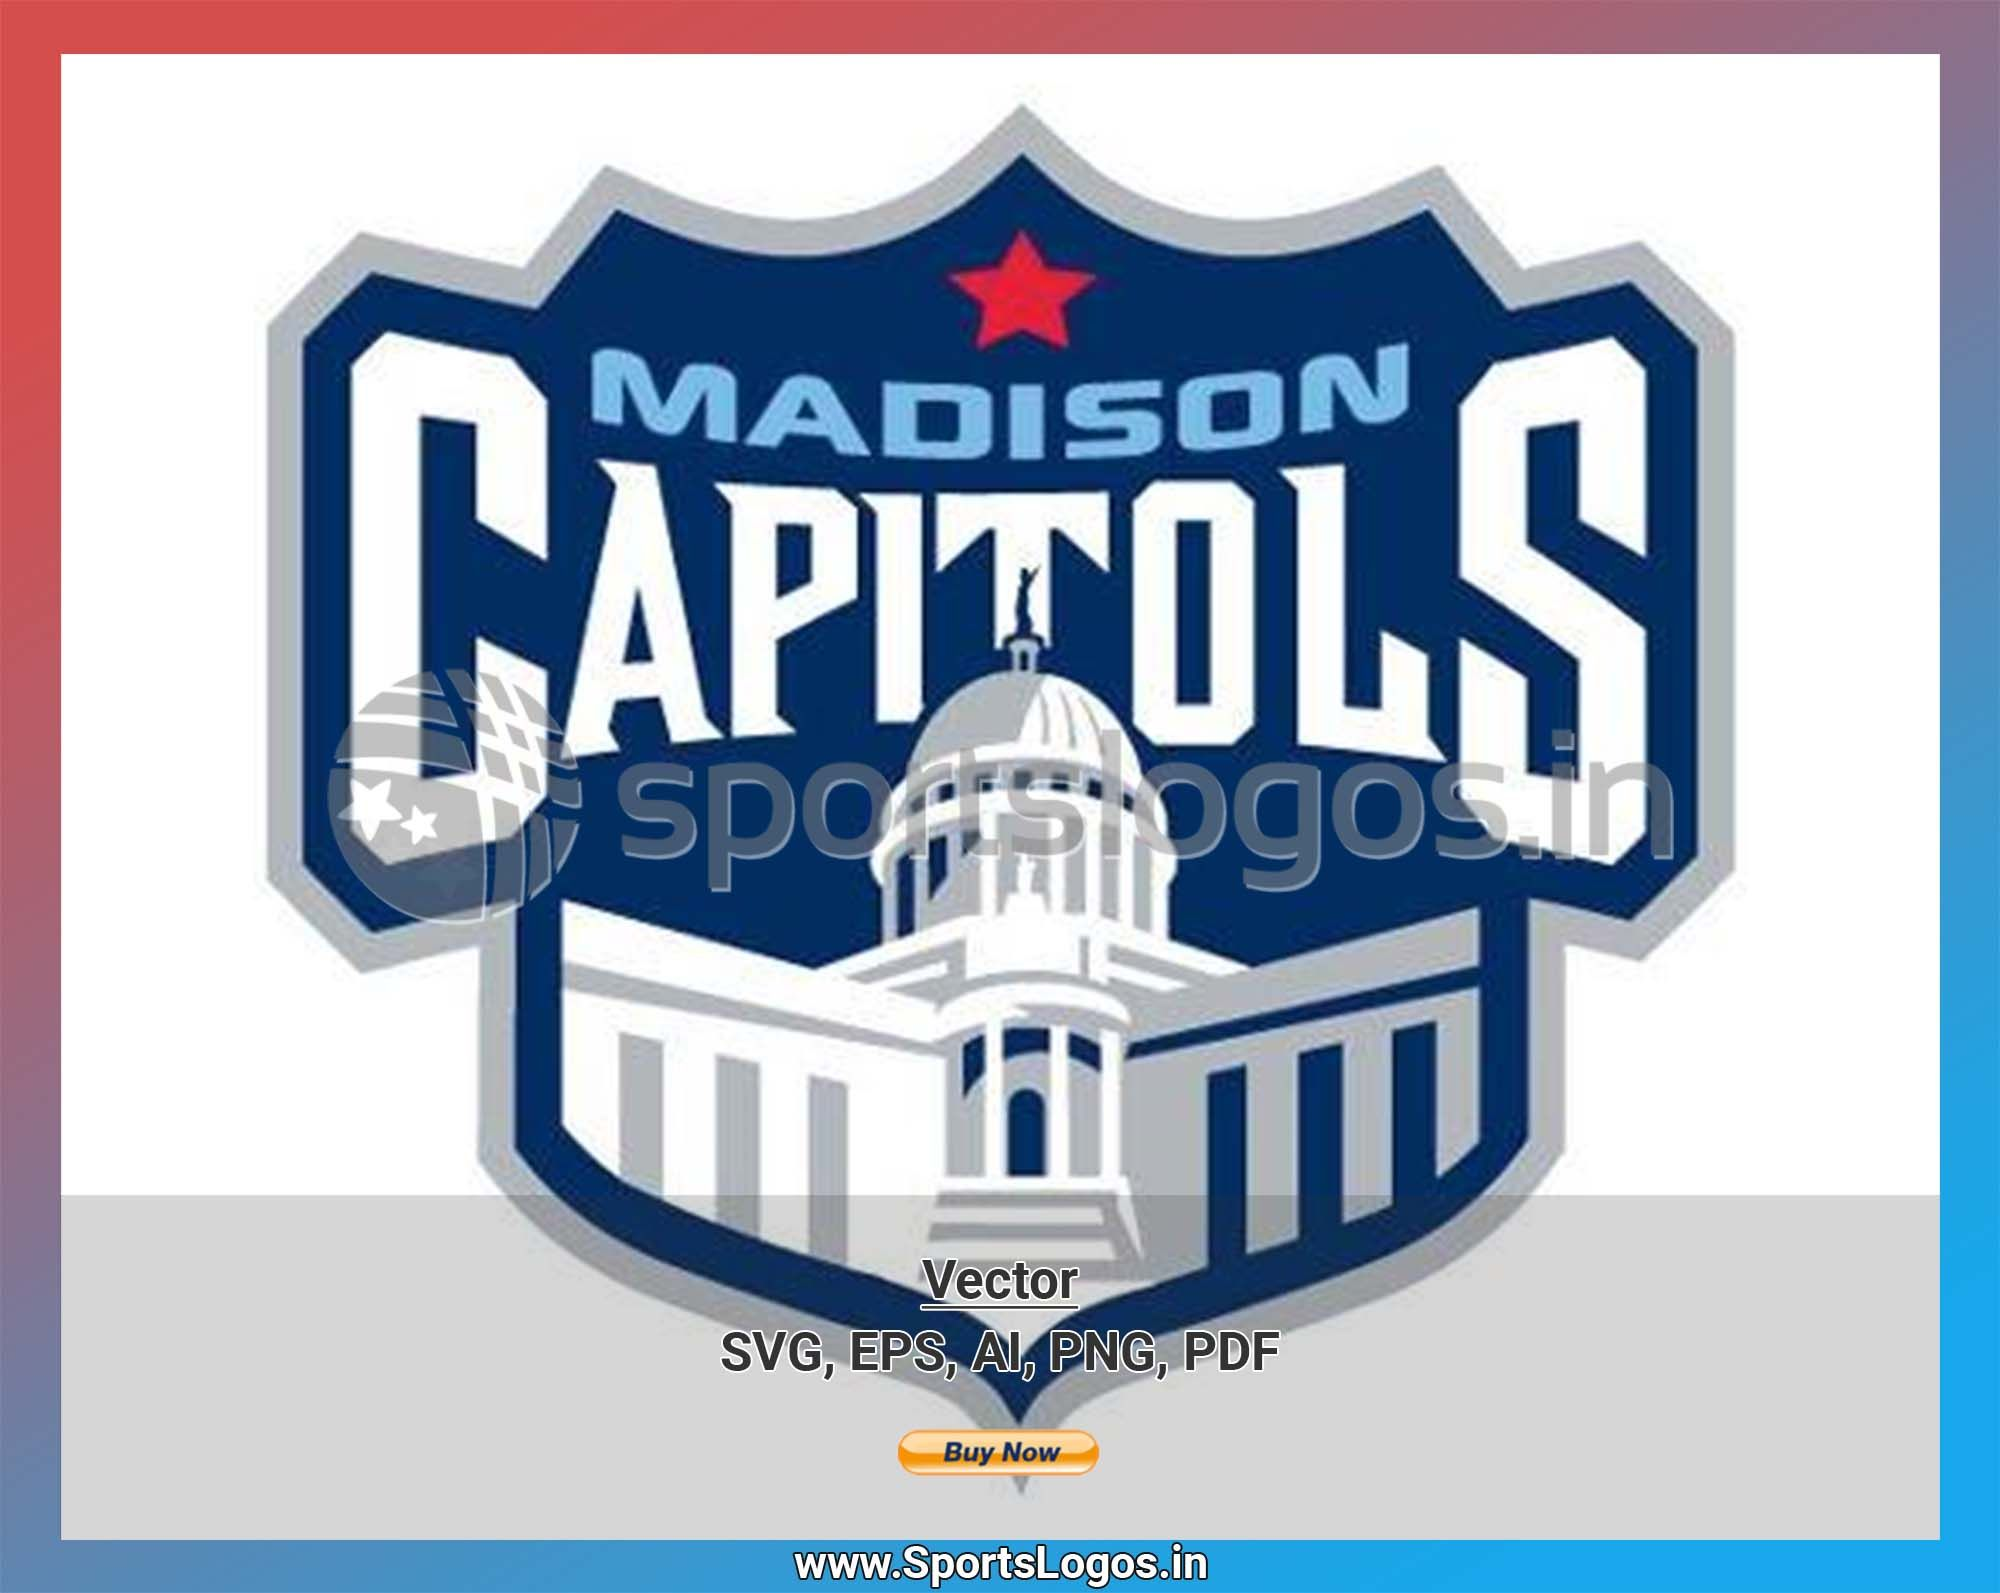 Madison Capitols Hockey Sports Vector Svg Logo In 5 Formats Spln002499 Sports Logos Embroidery Vector For Nfl Nba Nhl Mlb Milb And More Sport Hockey Sports Logo Embroidery Logo